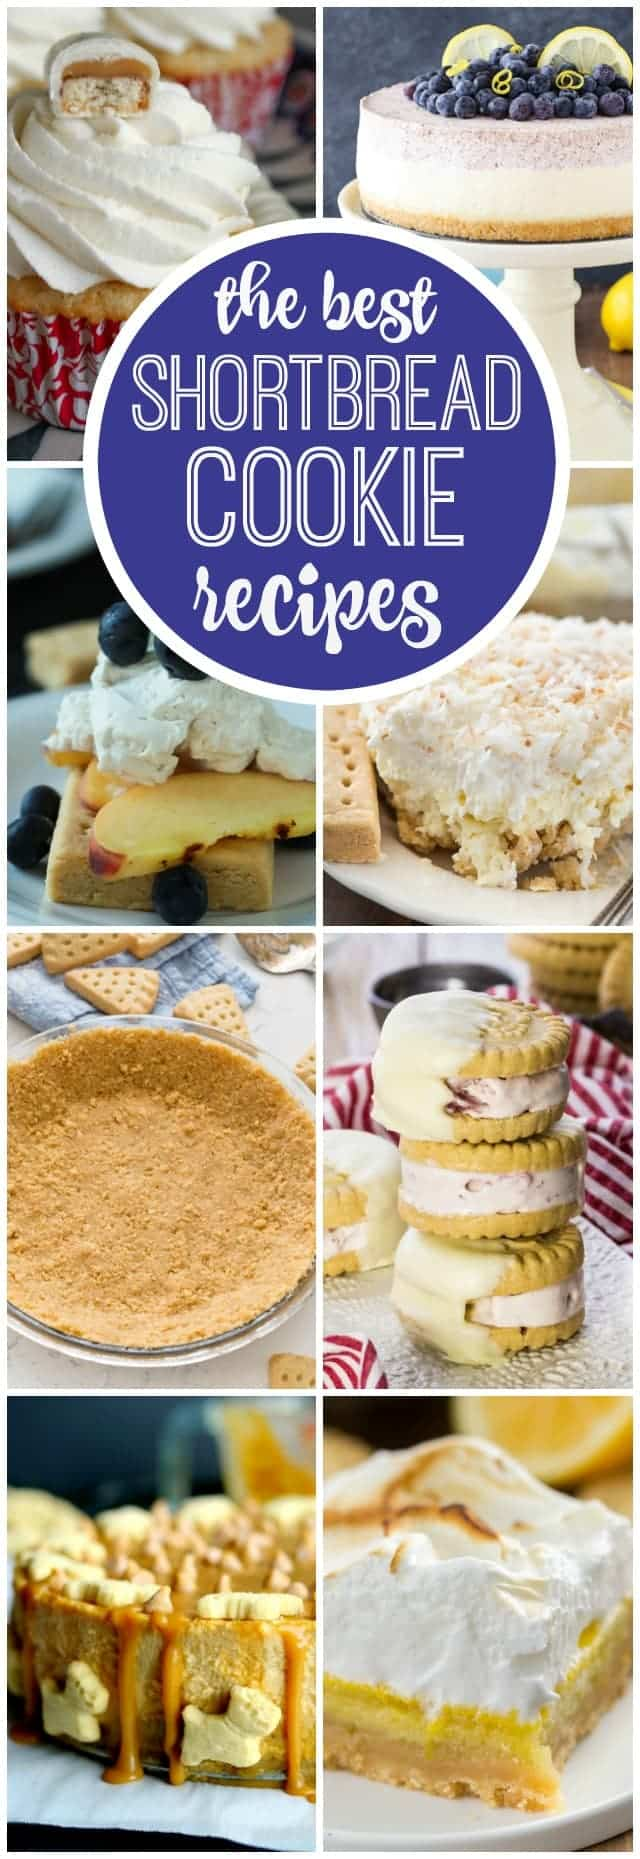 These are the BEST Shortbread Cookie recipes! Use that box of Walkers Shortbread to create SO many delicious recipes!